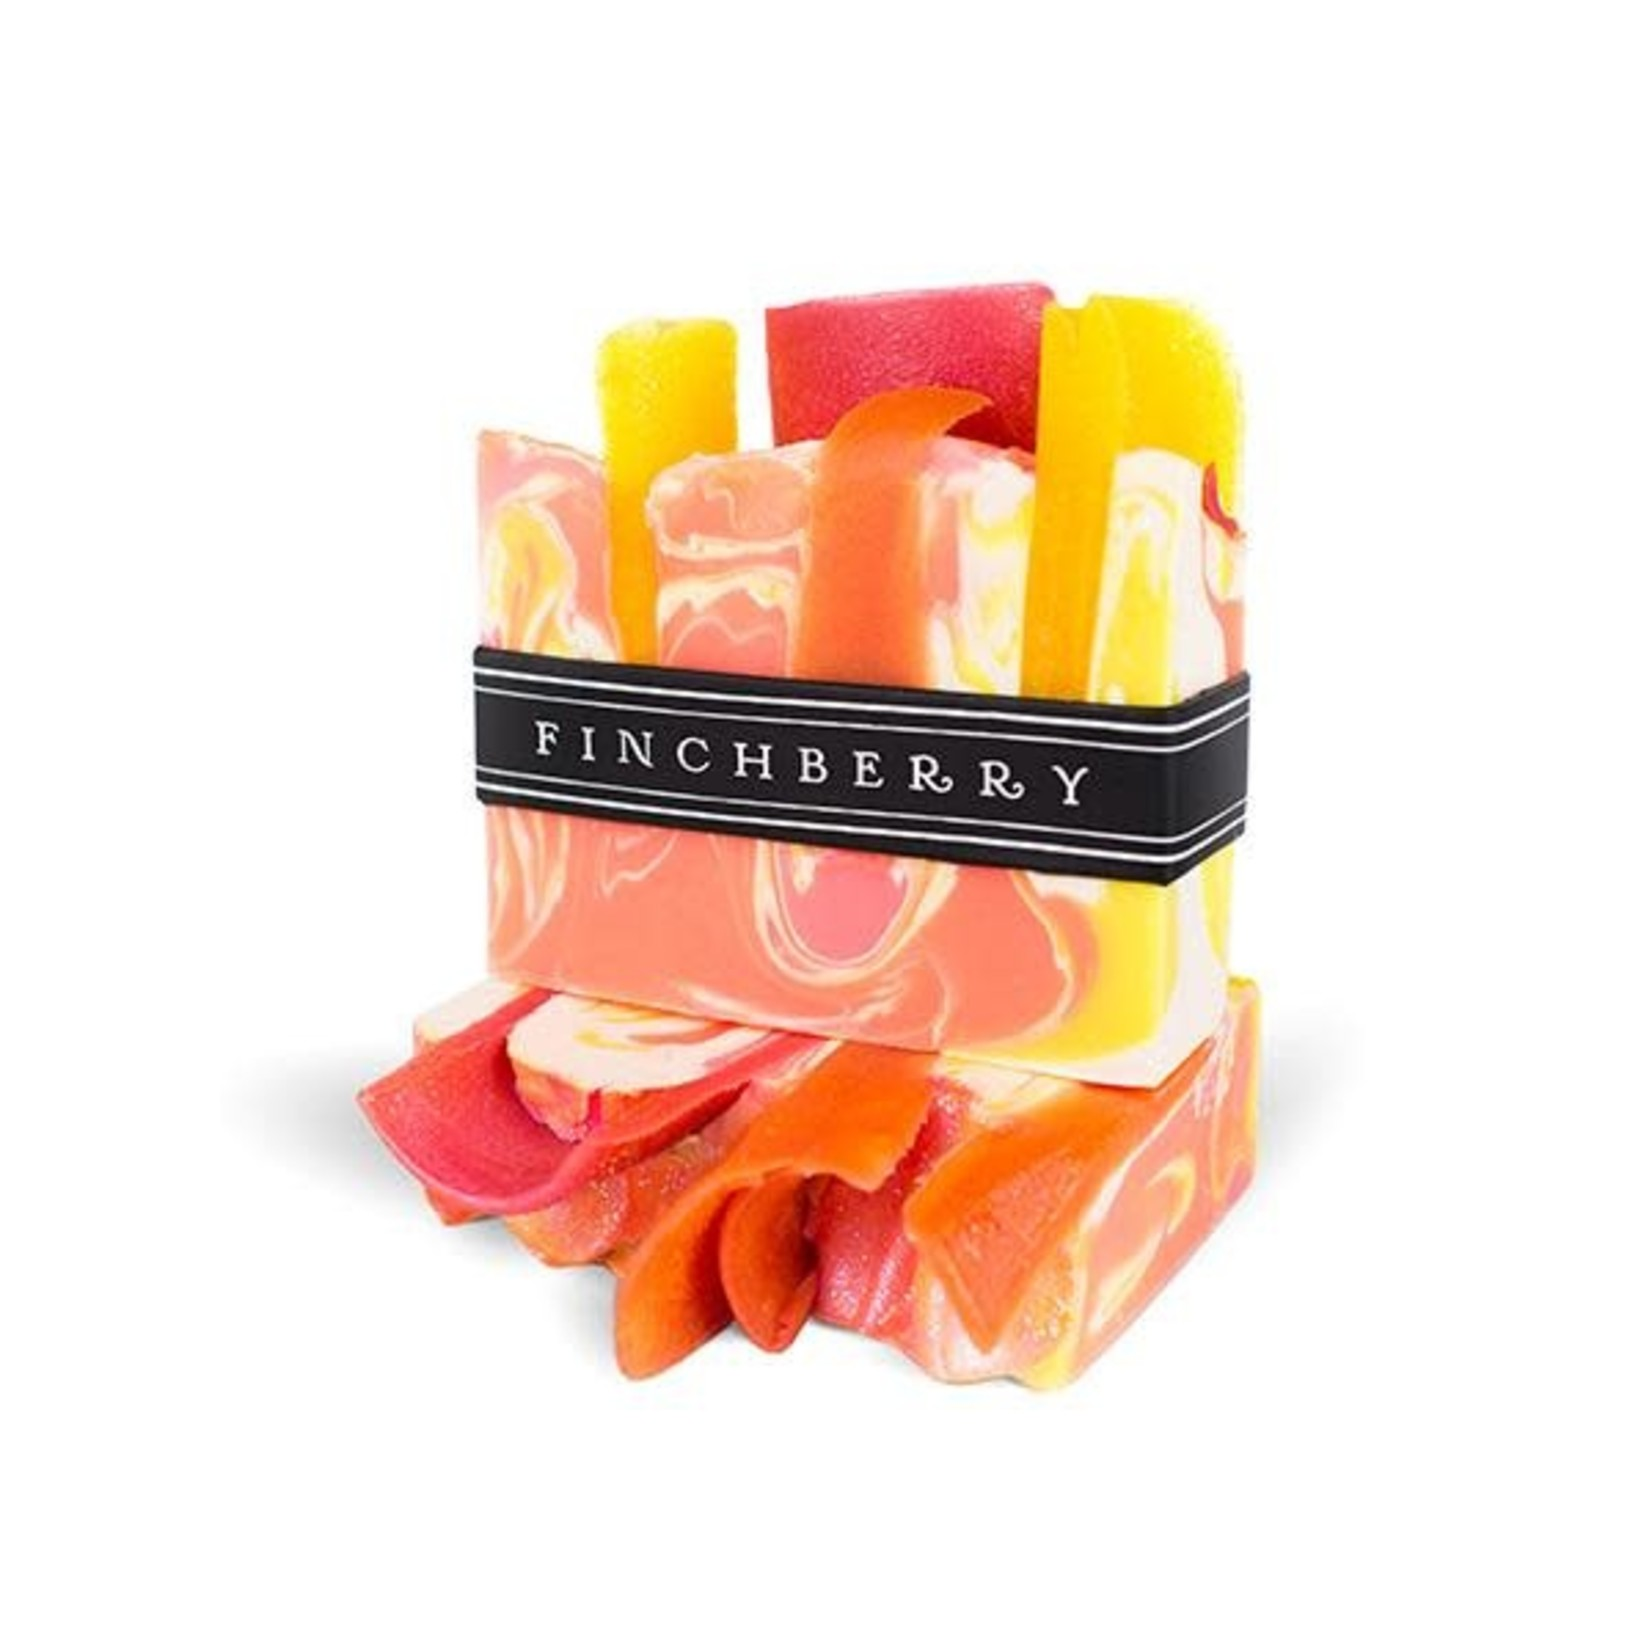 FinchBerry Soapery Main Squeeze - Handcrafted Vegan Soap